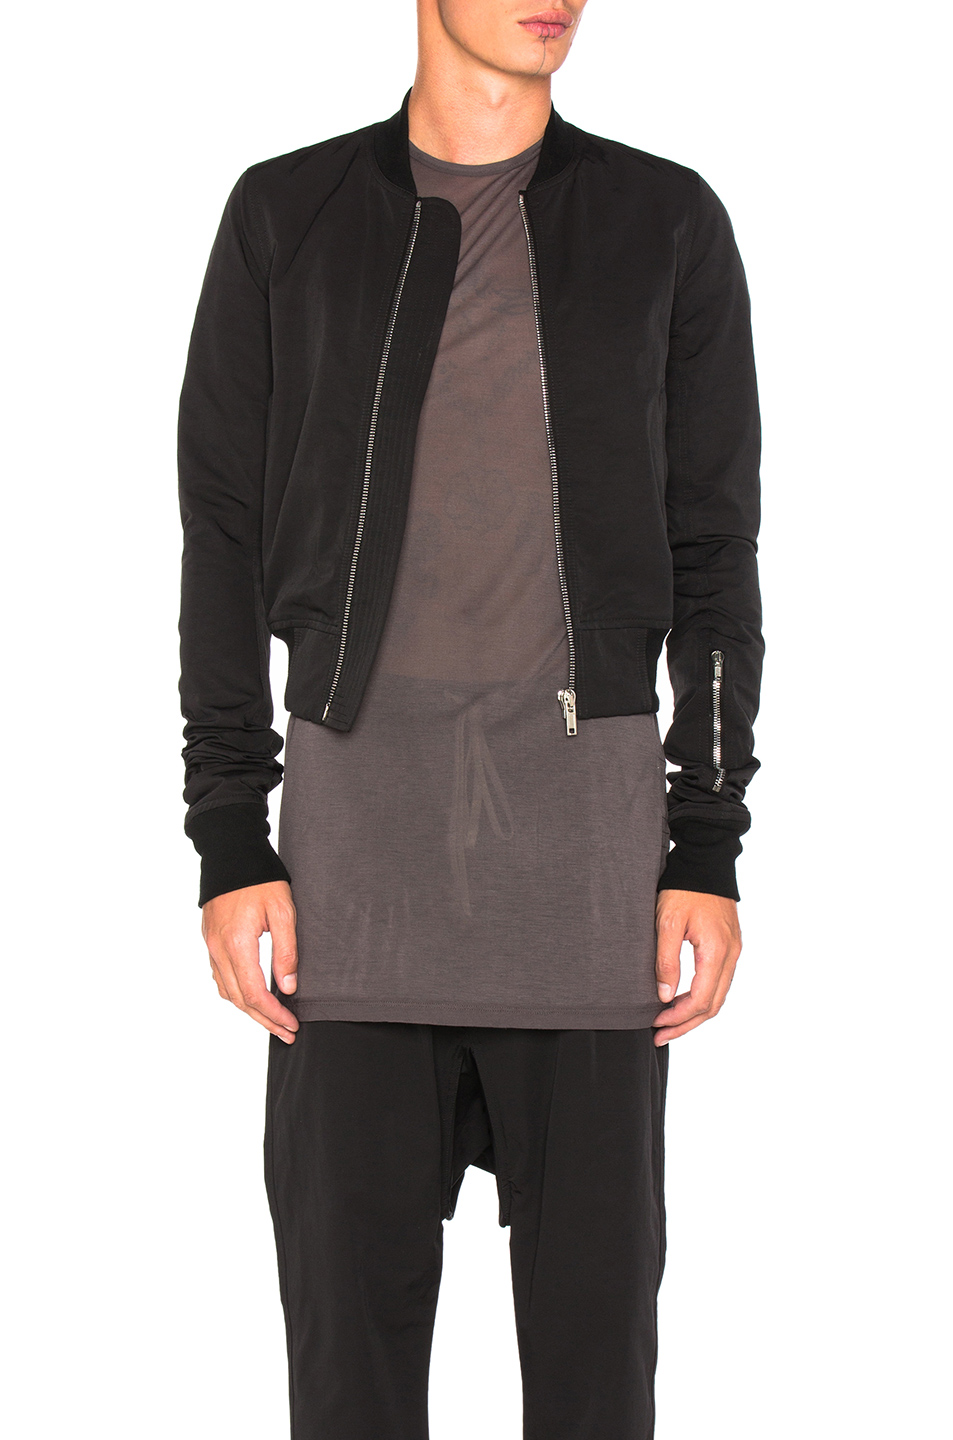 DRKSHDW by Rick Owens Glitter Flight Bomber in Black